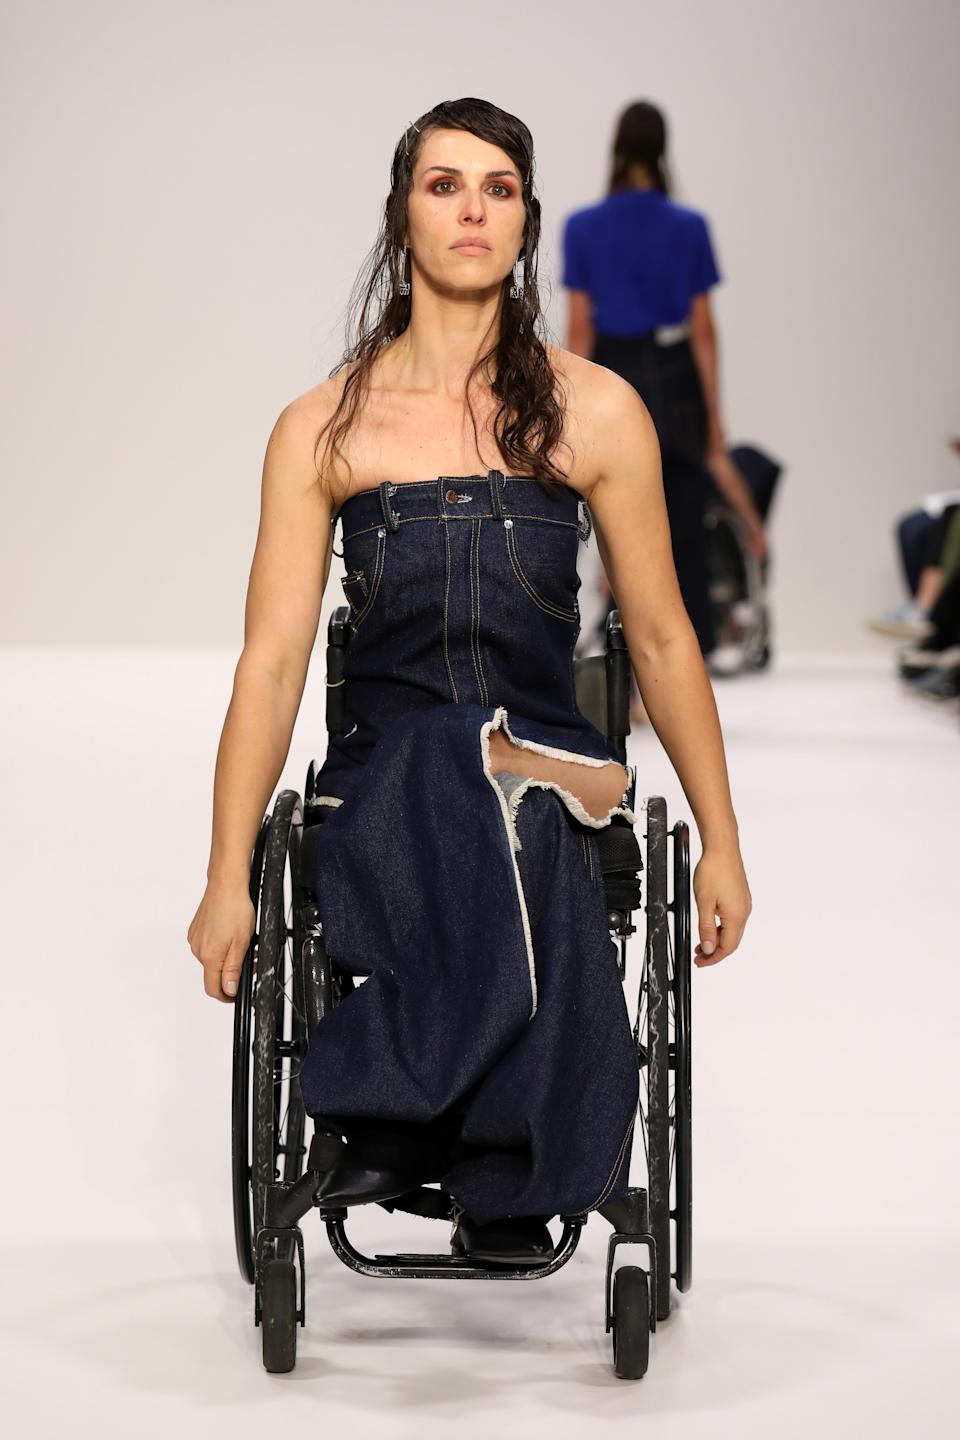 The designer herself is now a full-time wheelchair user [Photo: Getty]